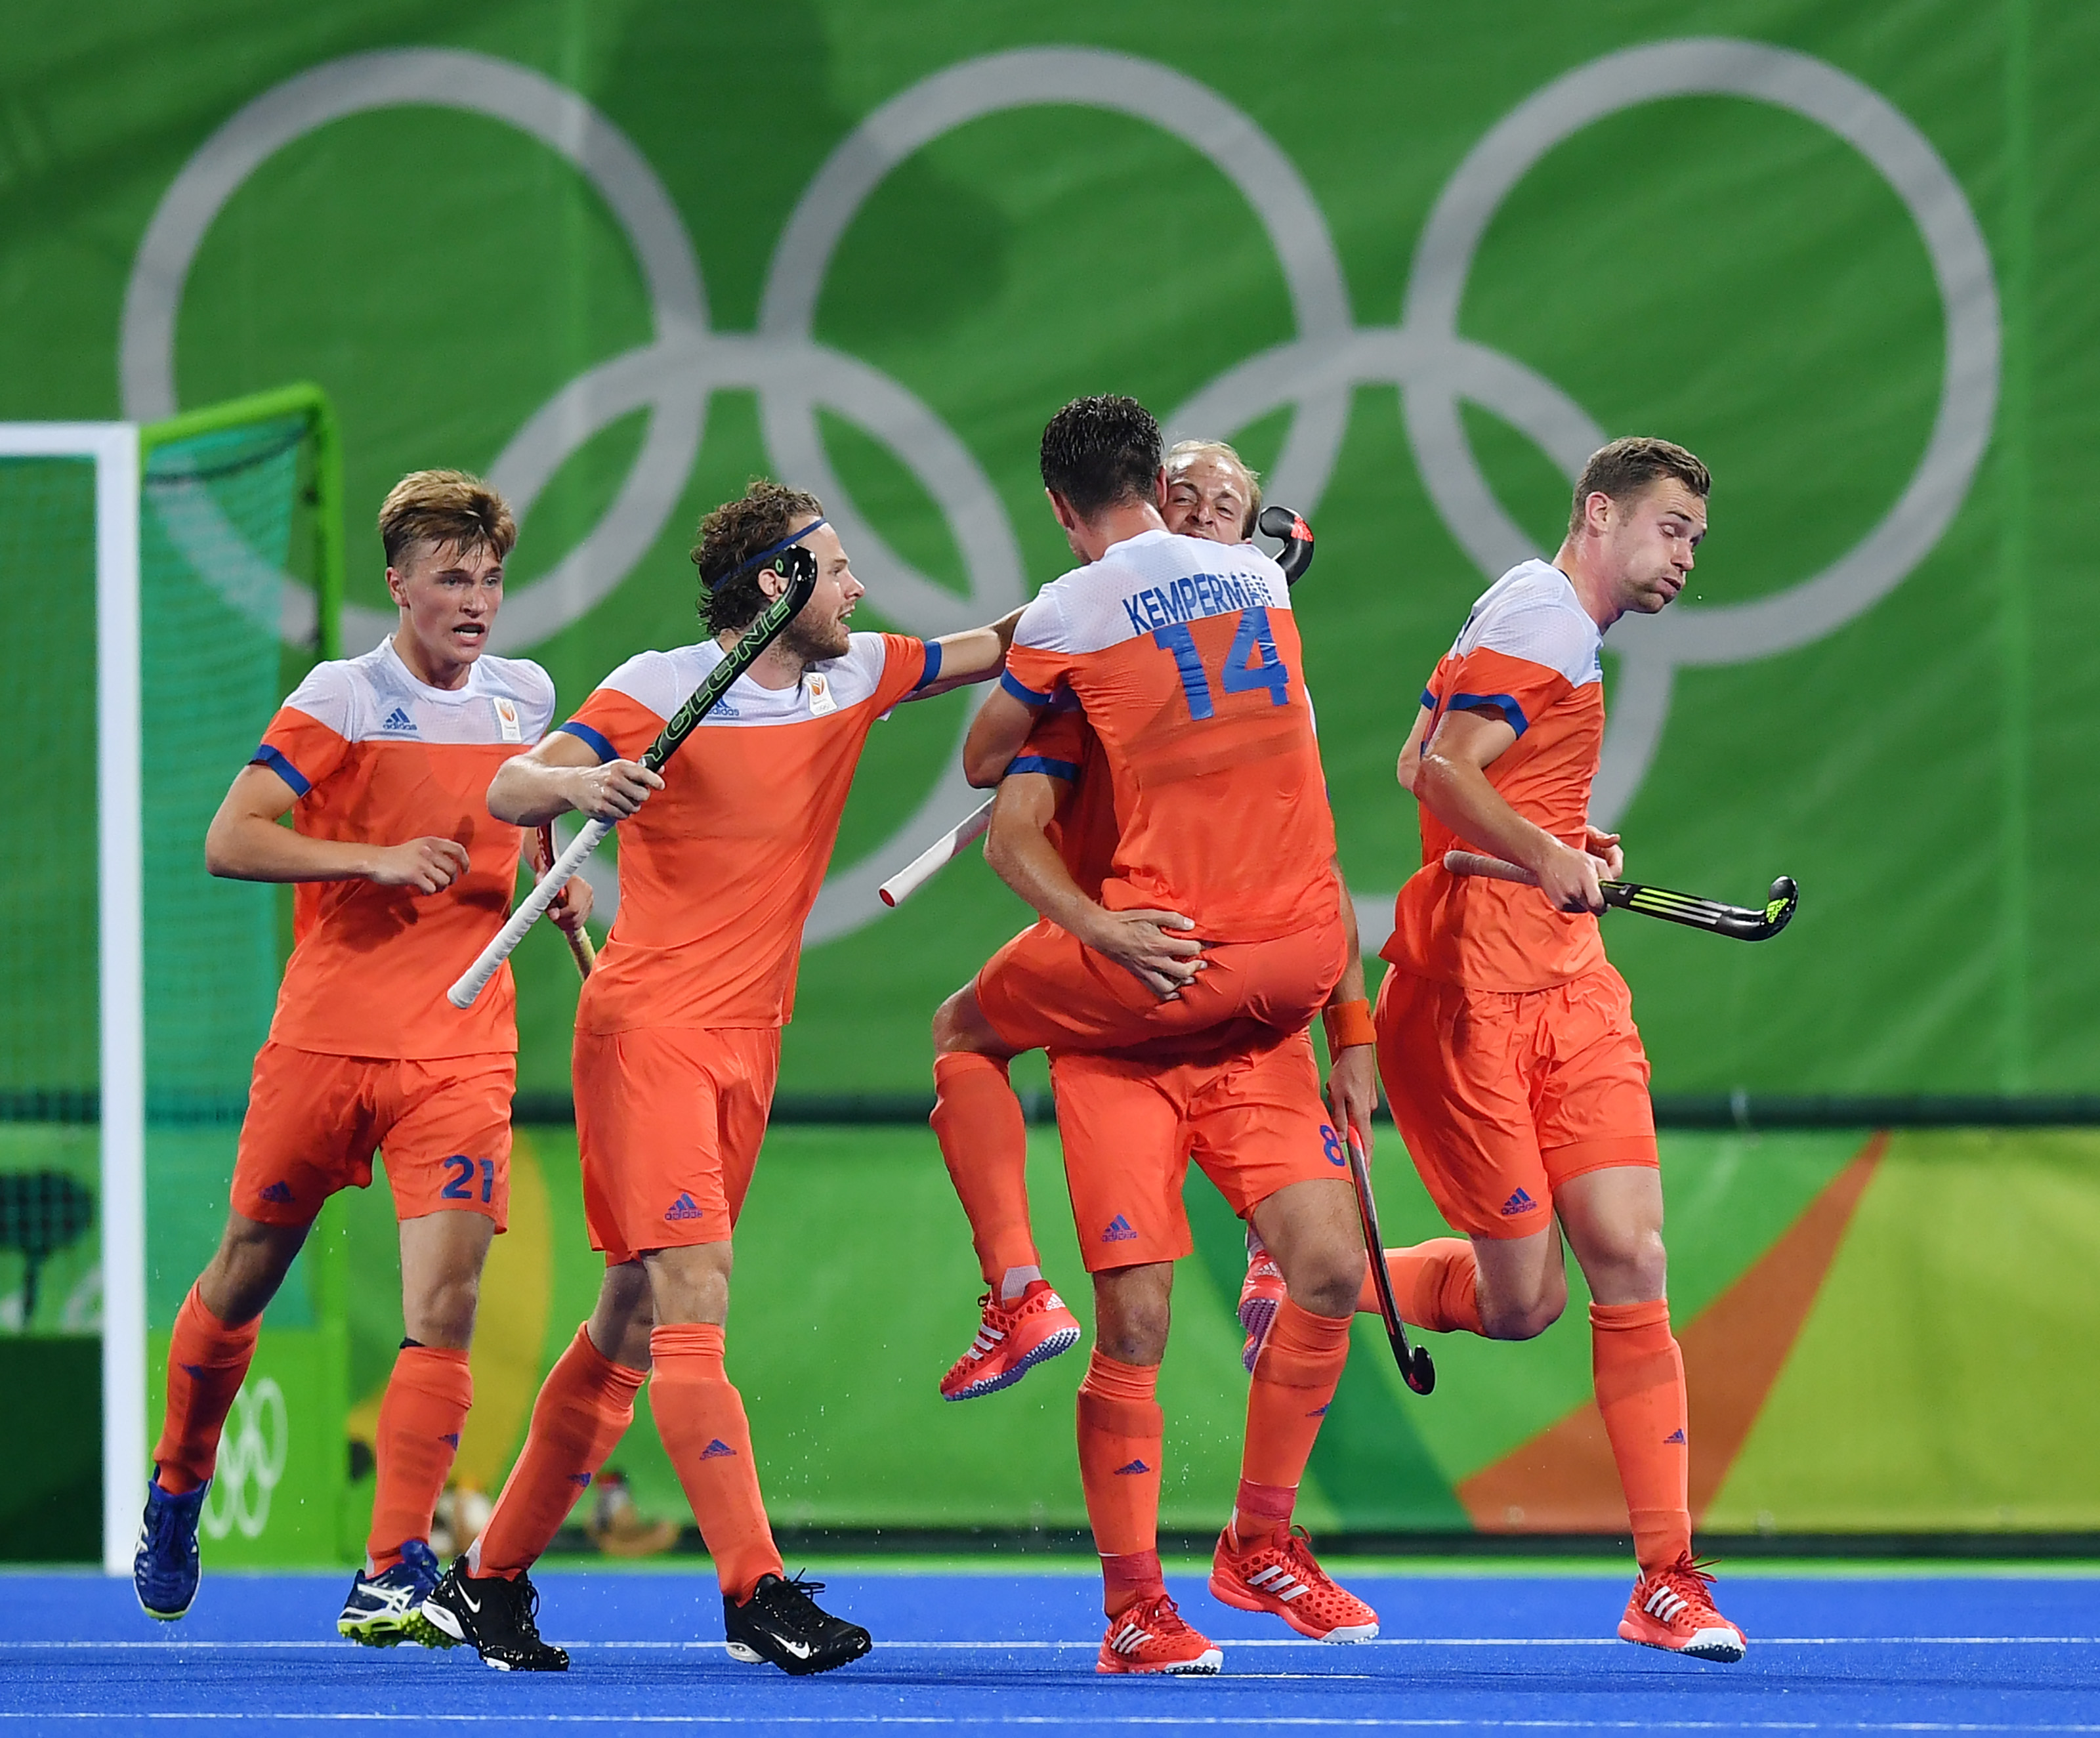 Netherlands' players celebrate their second goal during the men's quarterfinal field hockey Netherlands vs Australia match of the Rio 2016 Olympics Games at the Olympic Hockey Centre in Rio de Janeiro on August 14, 2016. / AFP / MANAN VATSYAYANA (Photo credit should read @MANAN VATSYAYANA/AFP/Getty Images)